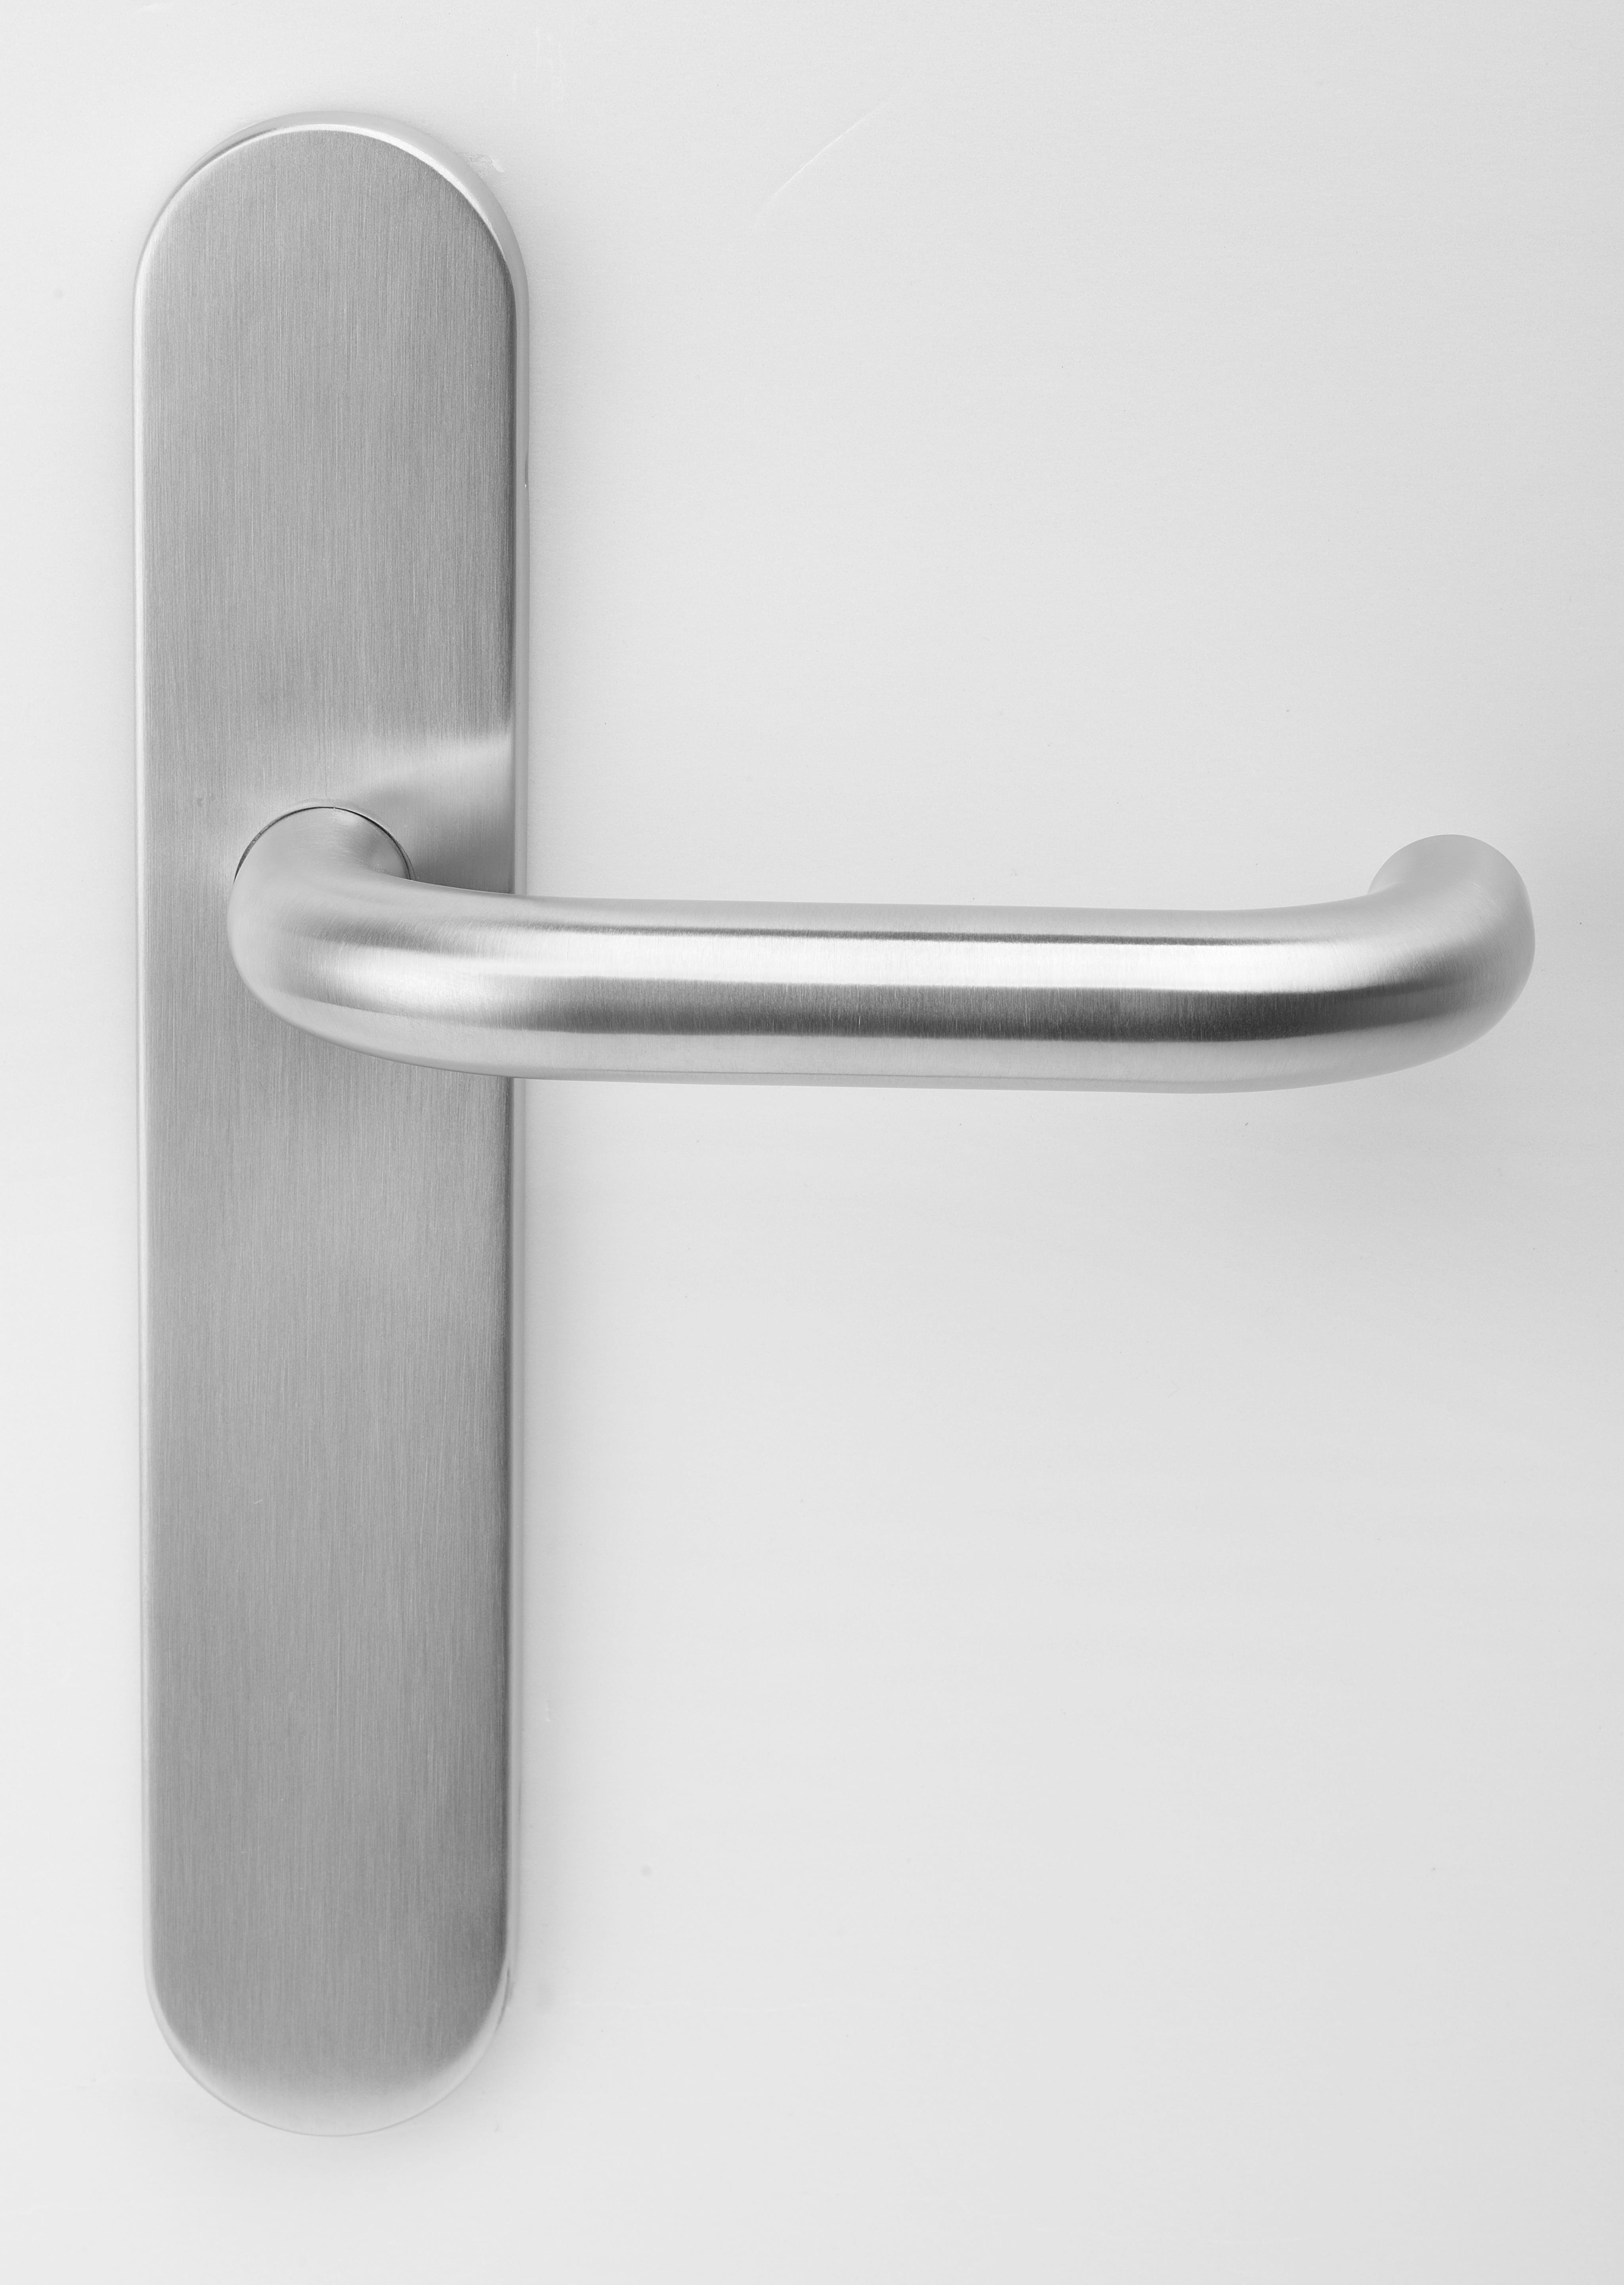 LHP-85-001-SSS - 001 Lever Handle on  Backplate